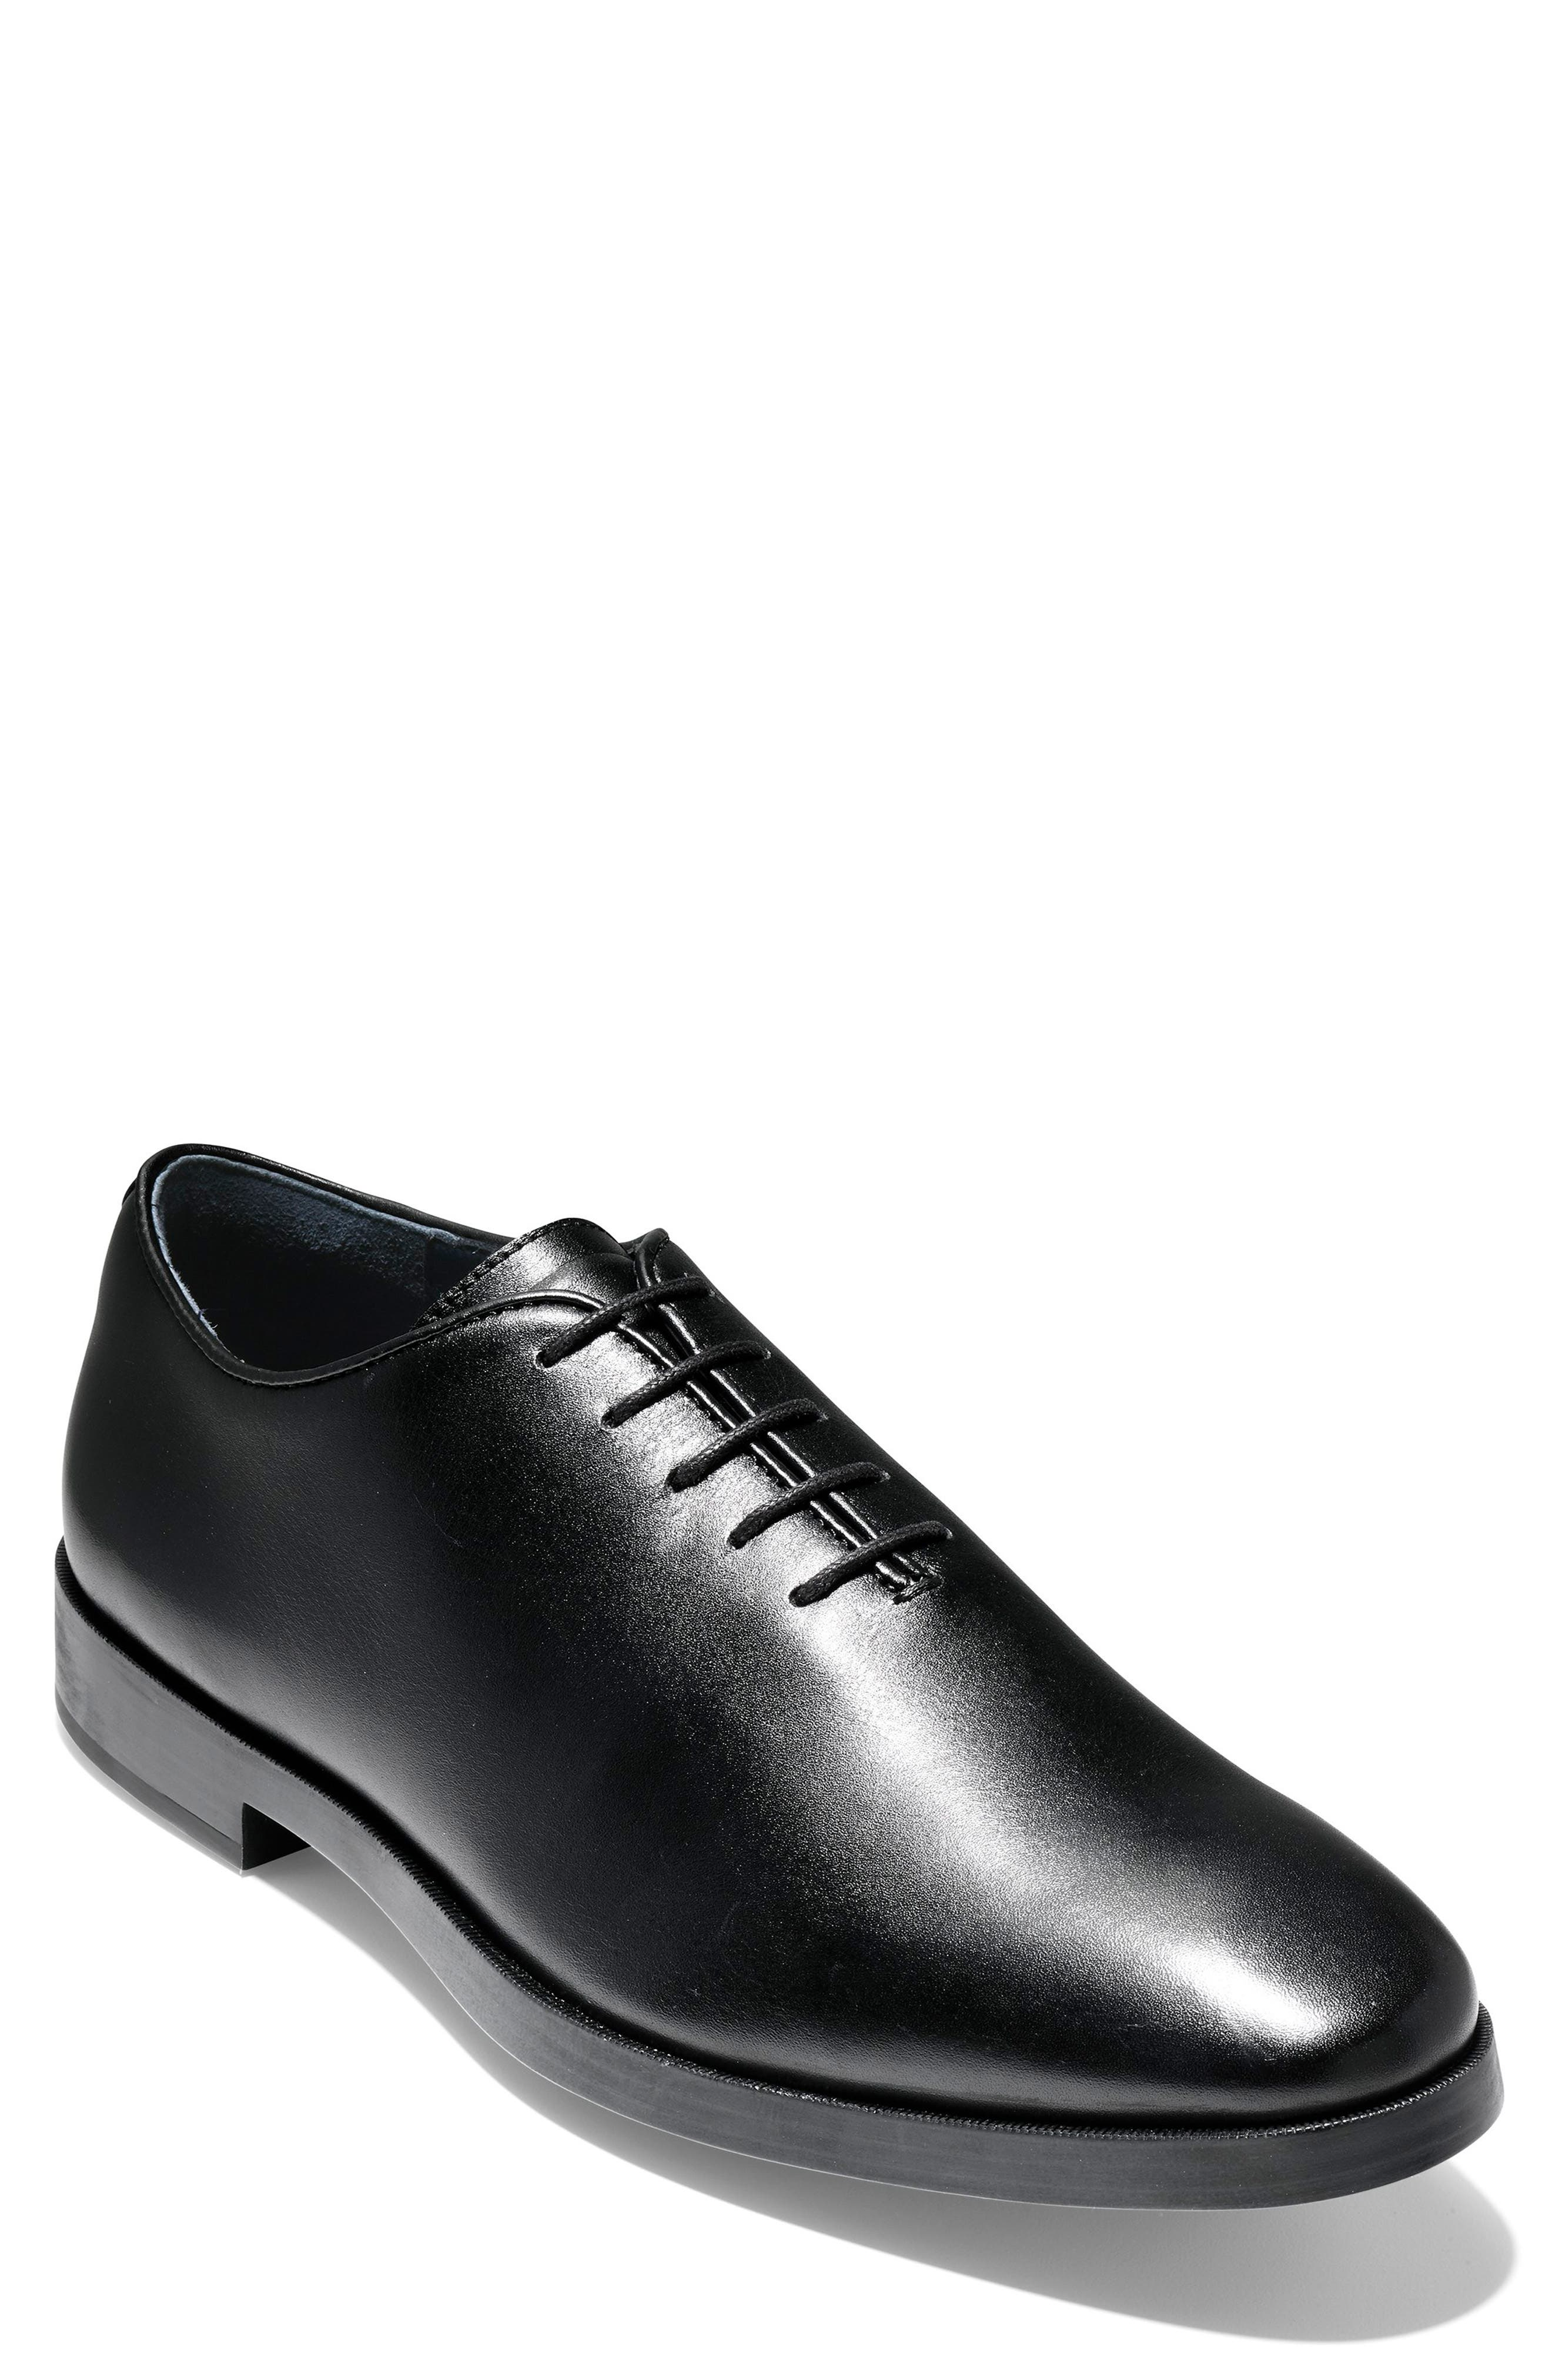 Cole Haan Jefferson Waterproof Wholecut Oxford- Black